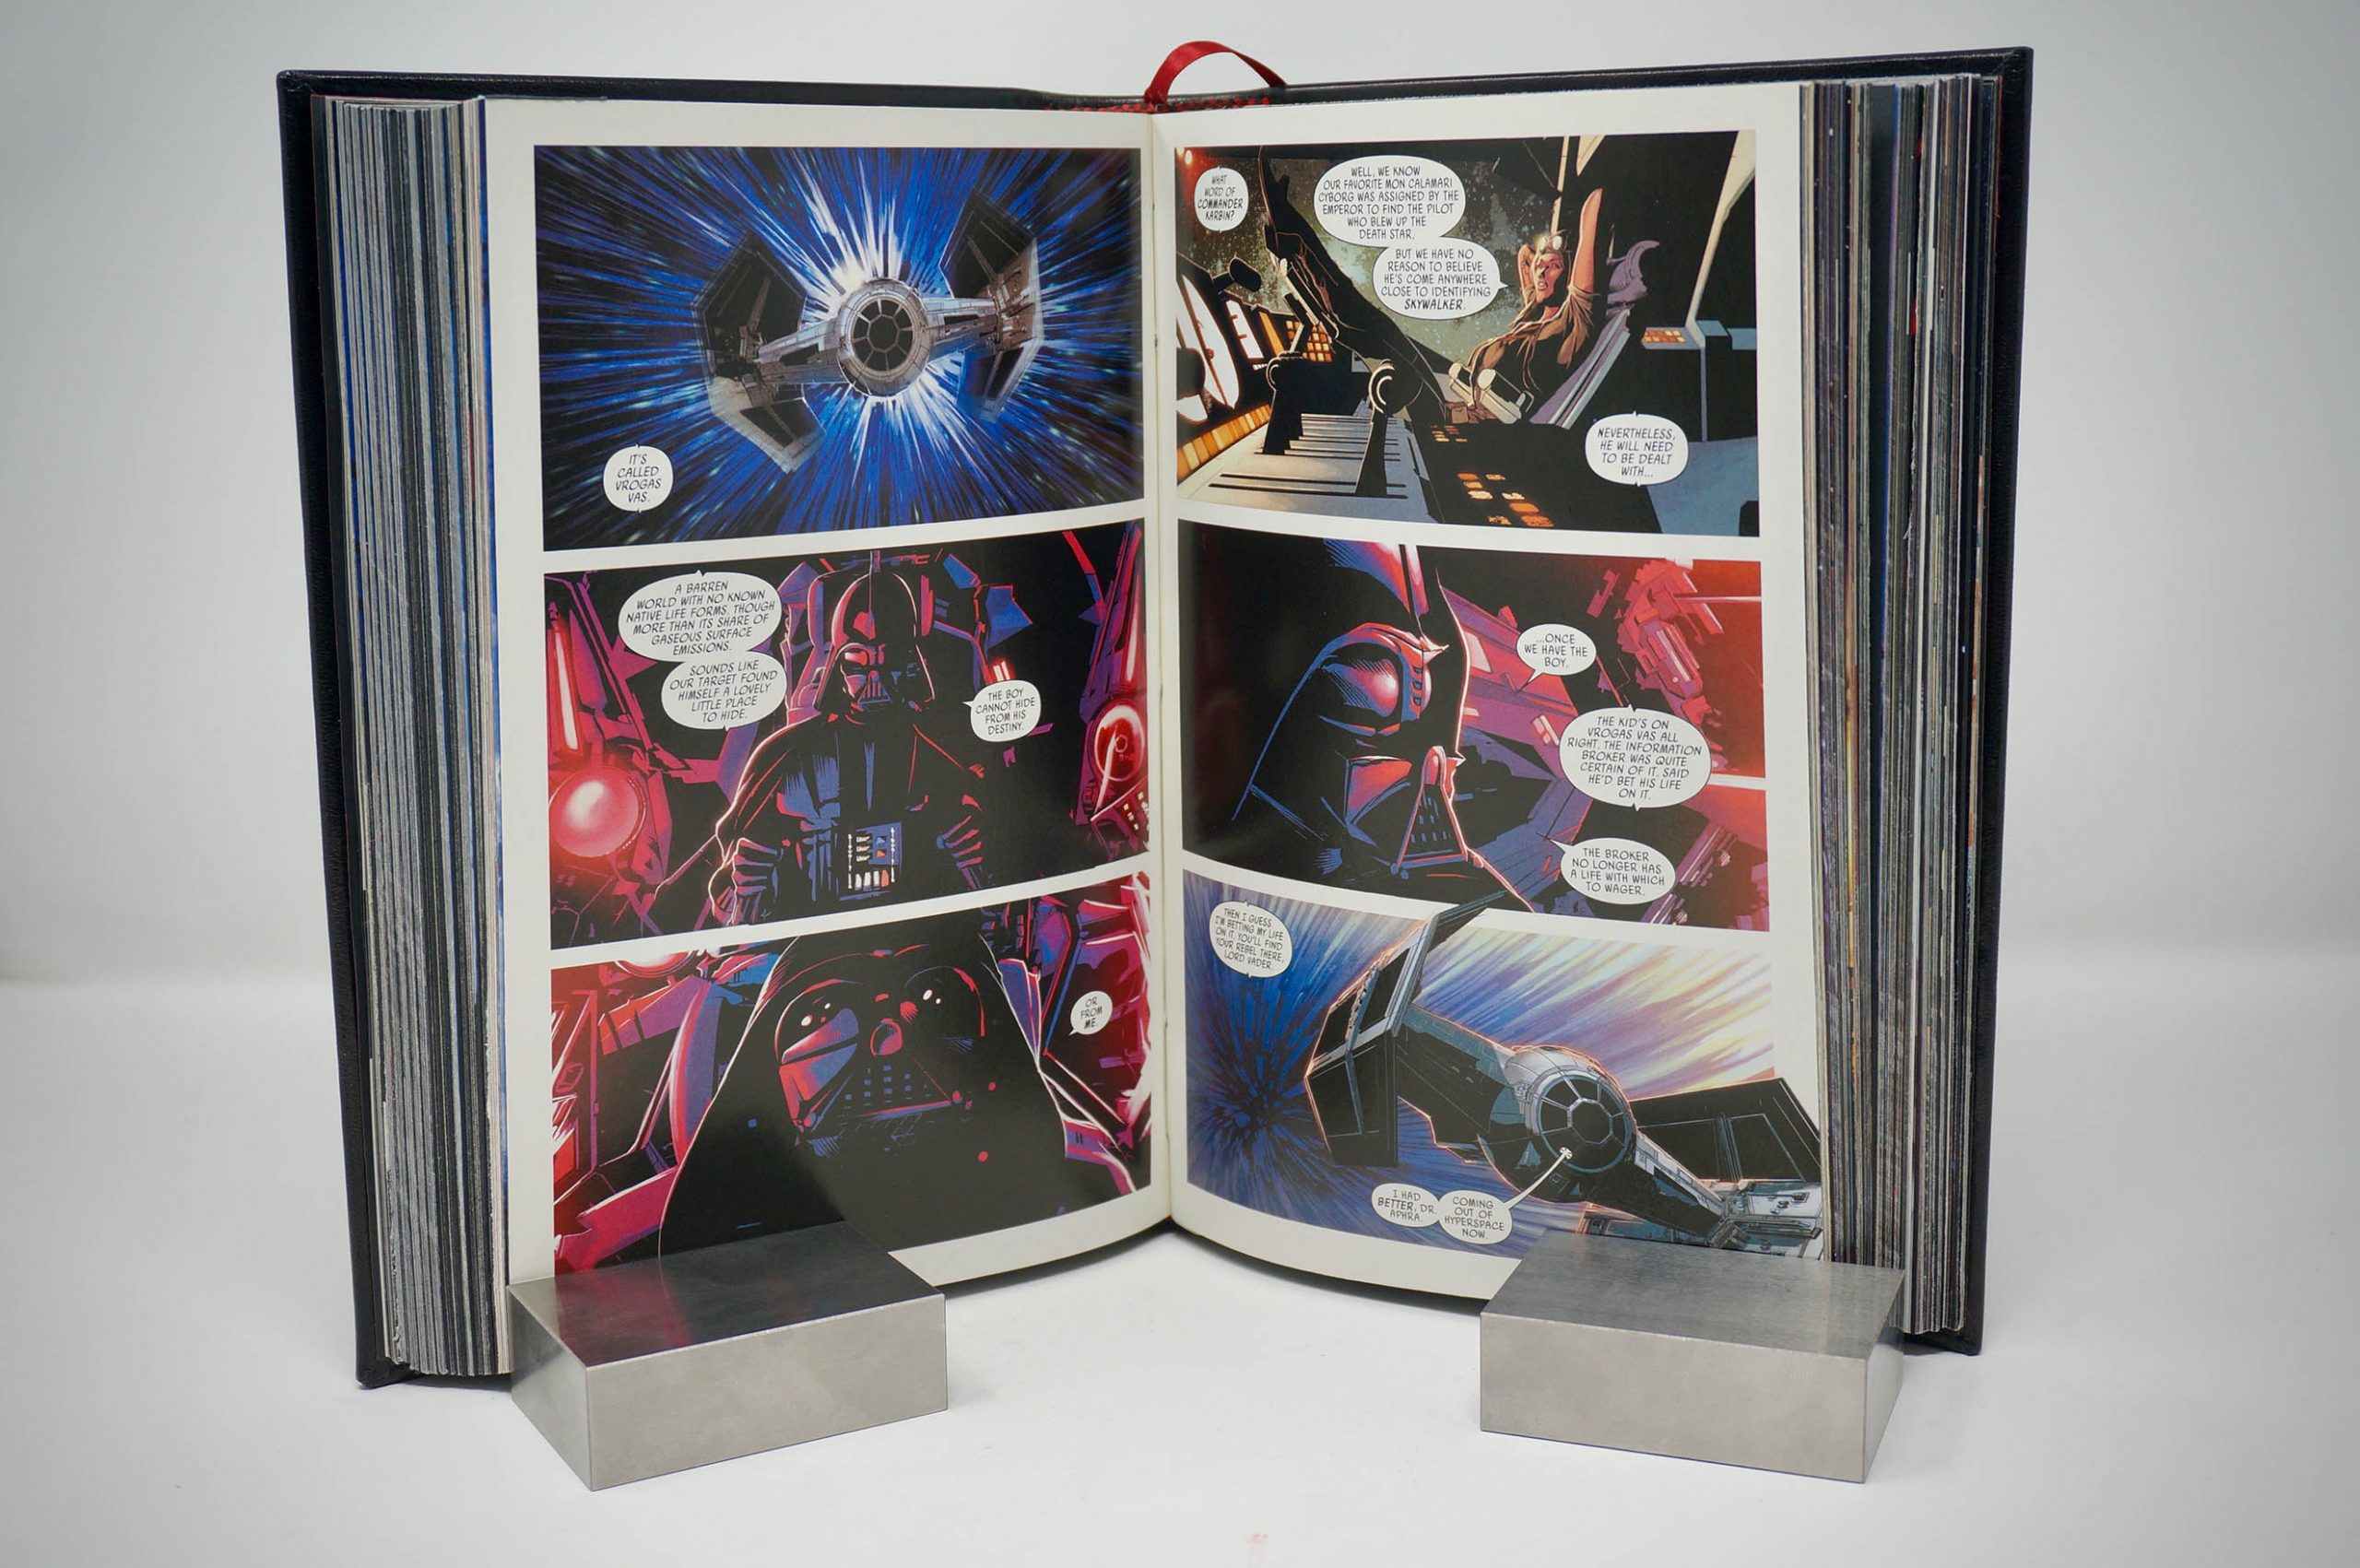 Dather Vader Comic Book (2015) Custom Leather Book Boston Harbor Bookbindery